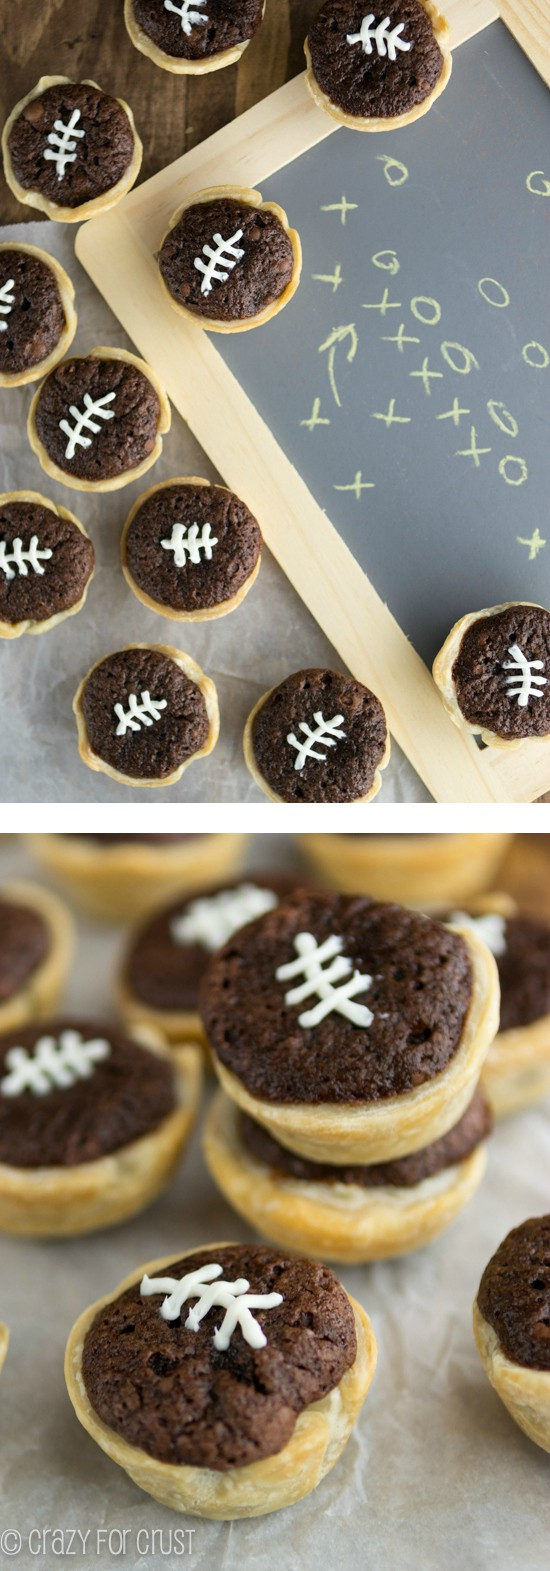 Mini Brownie Football Pies   www.crazyforcrust.com   Perfect for game day!